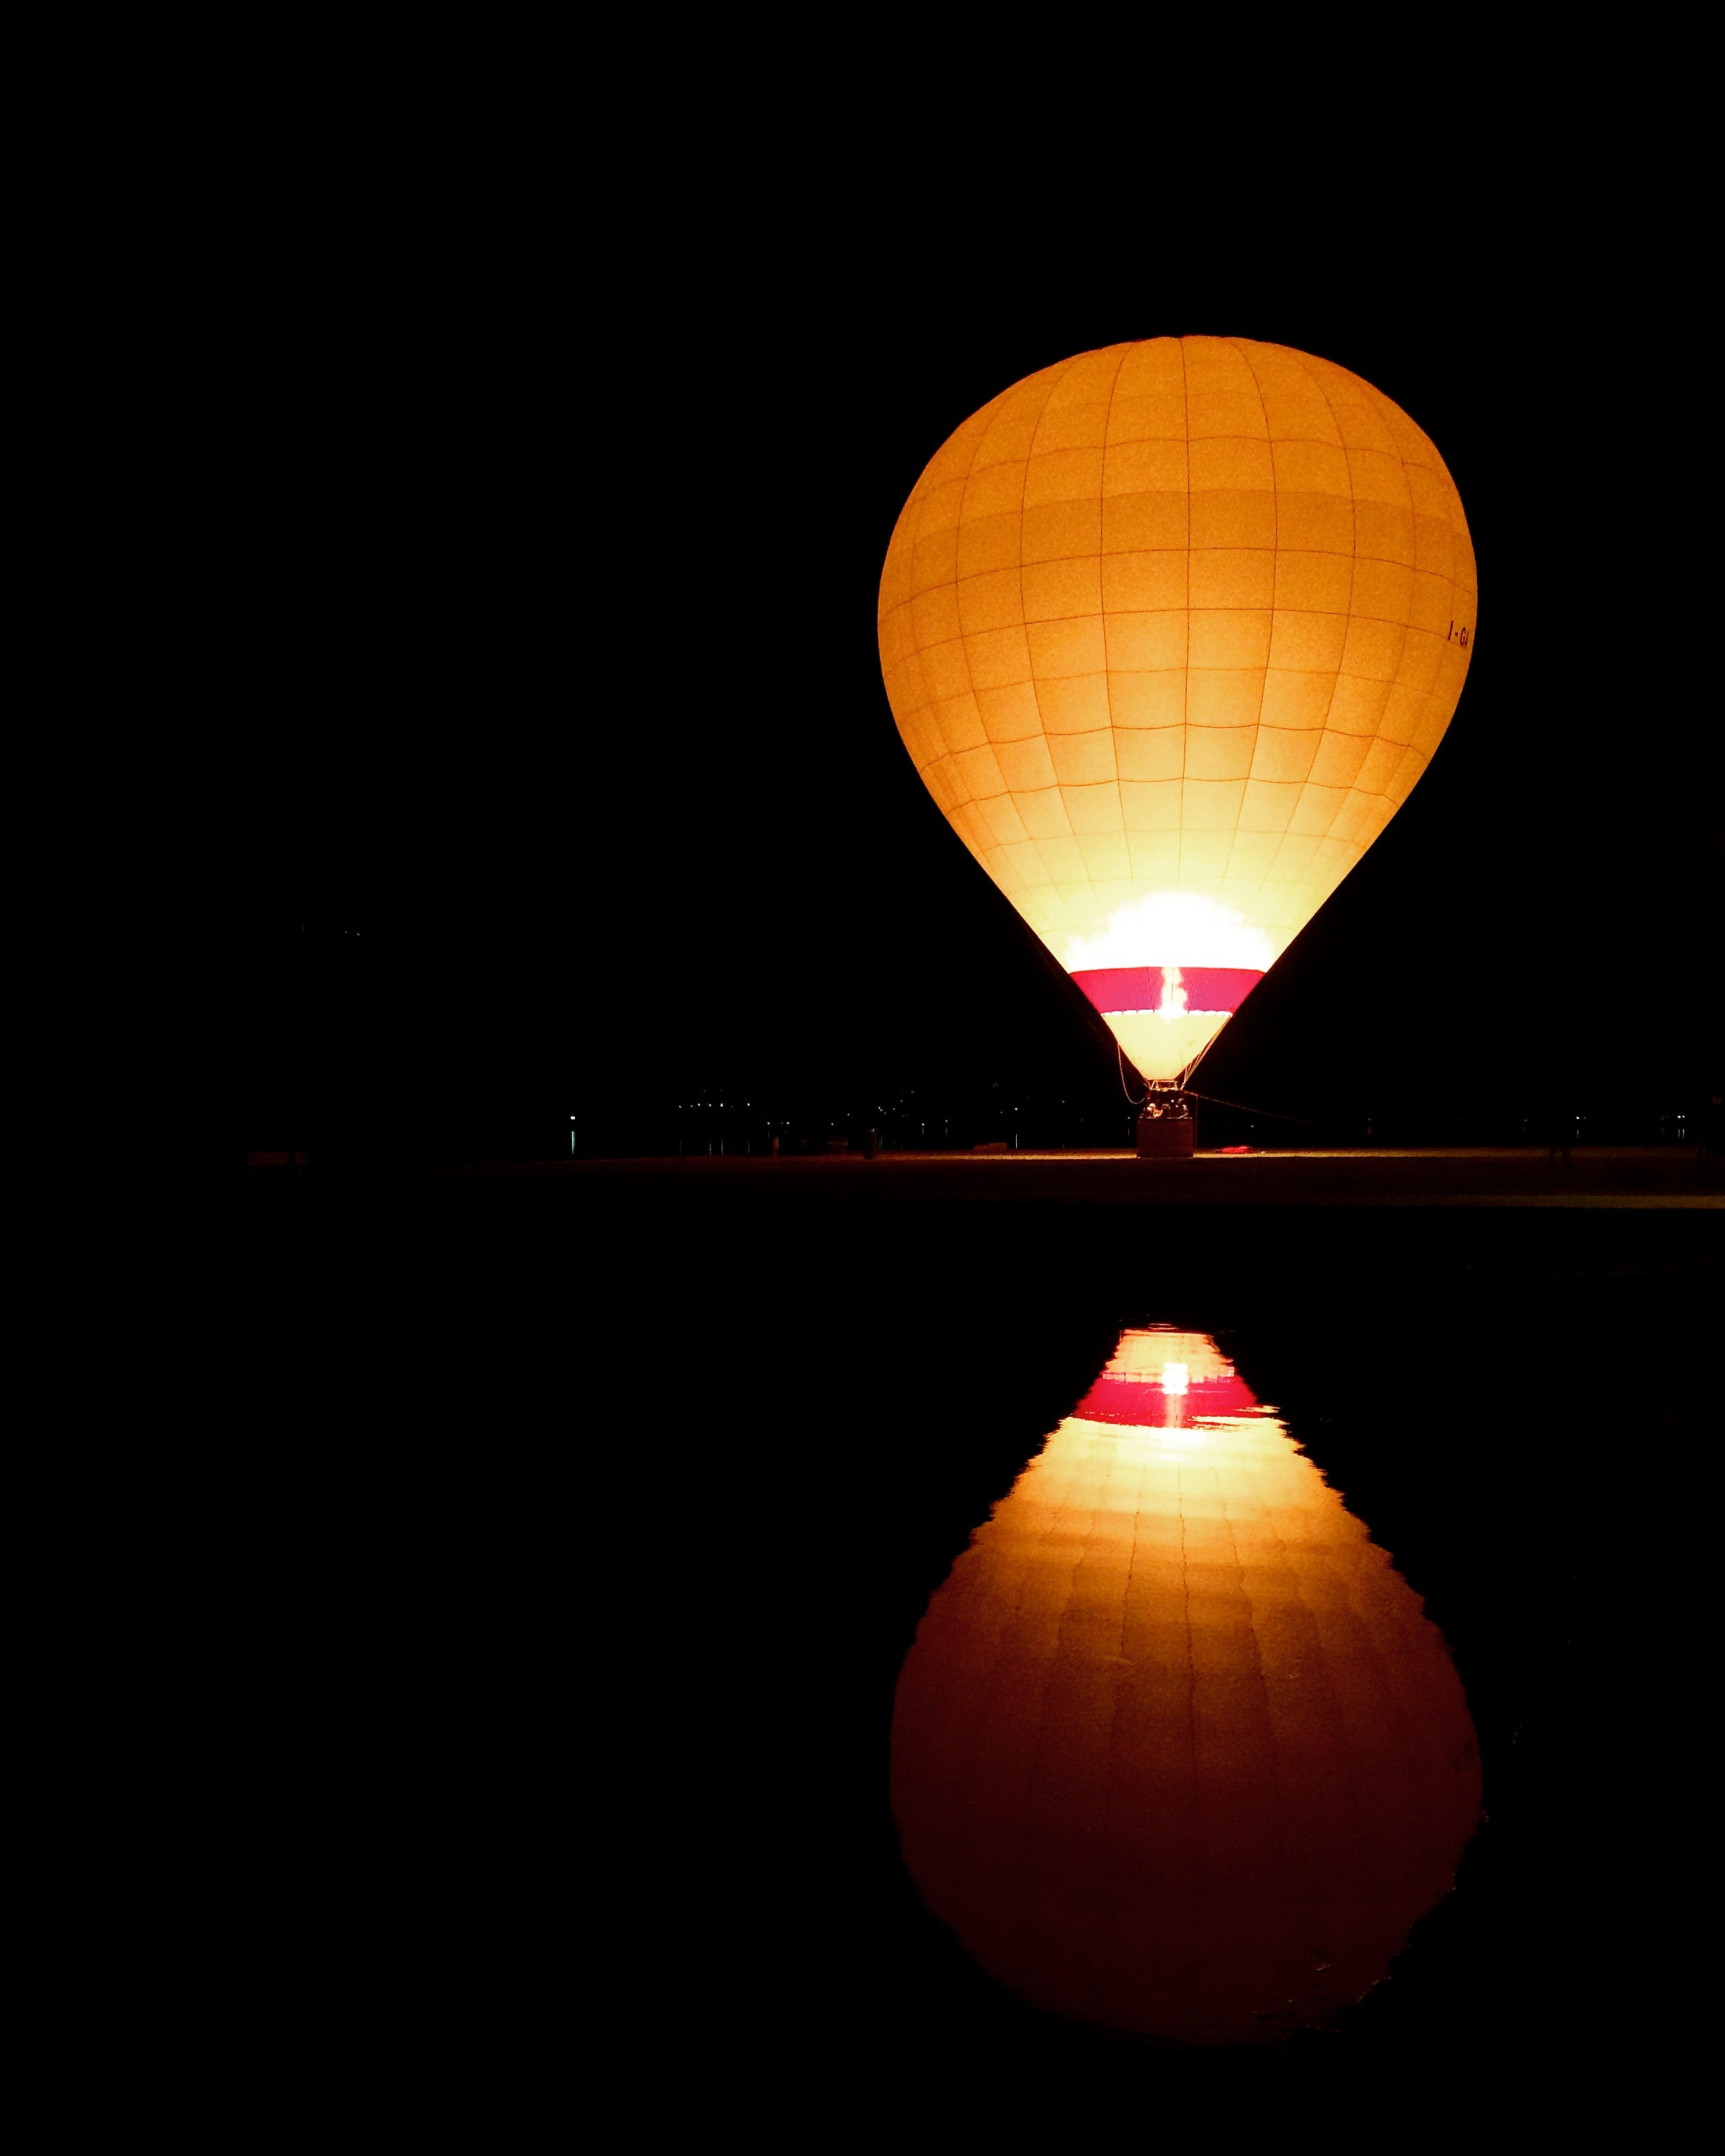 photography of brown and white hot air balloon at nighttime